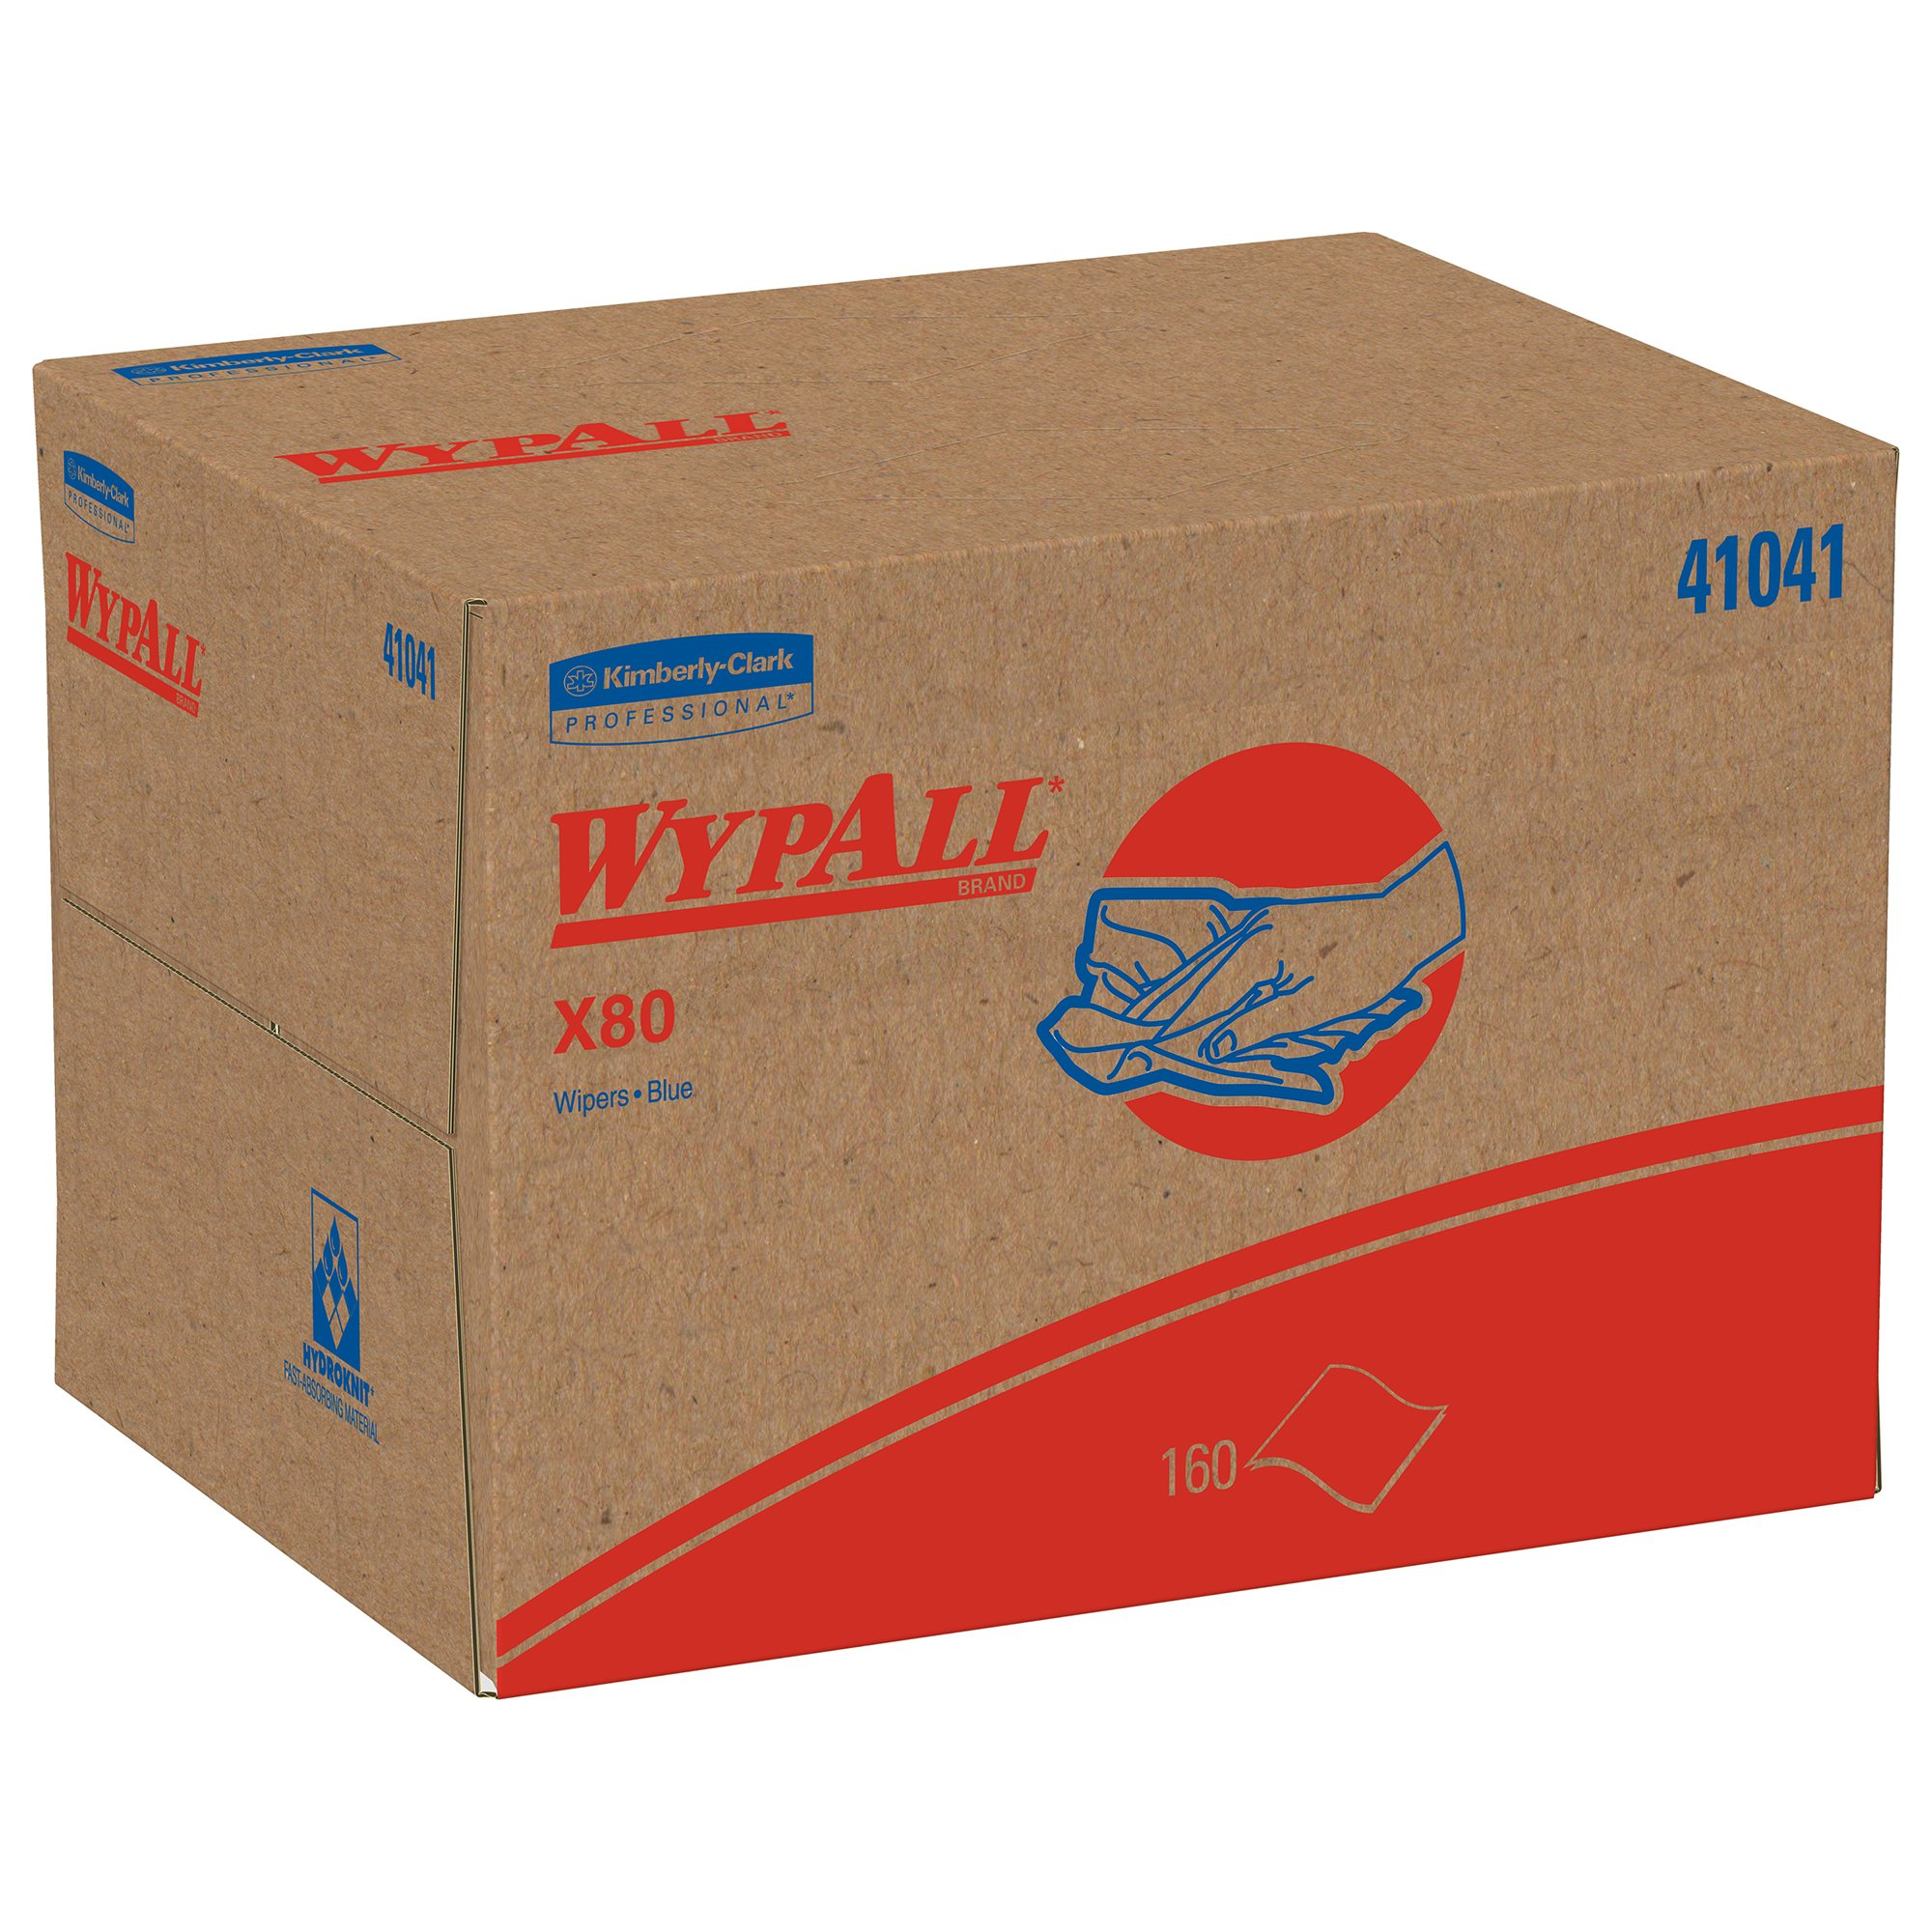 Wypall X80 Reusable Wipes (41041), Extended Use Cloths BRAG Box Format, Blue, 160 Sheets/Box; 1 Box/Case